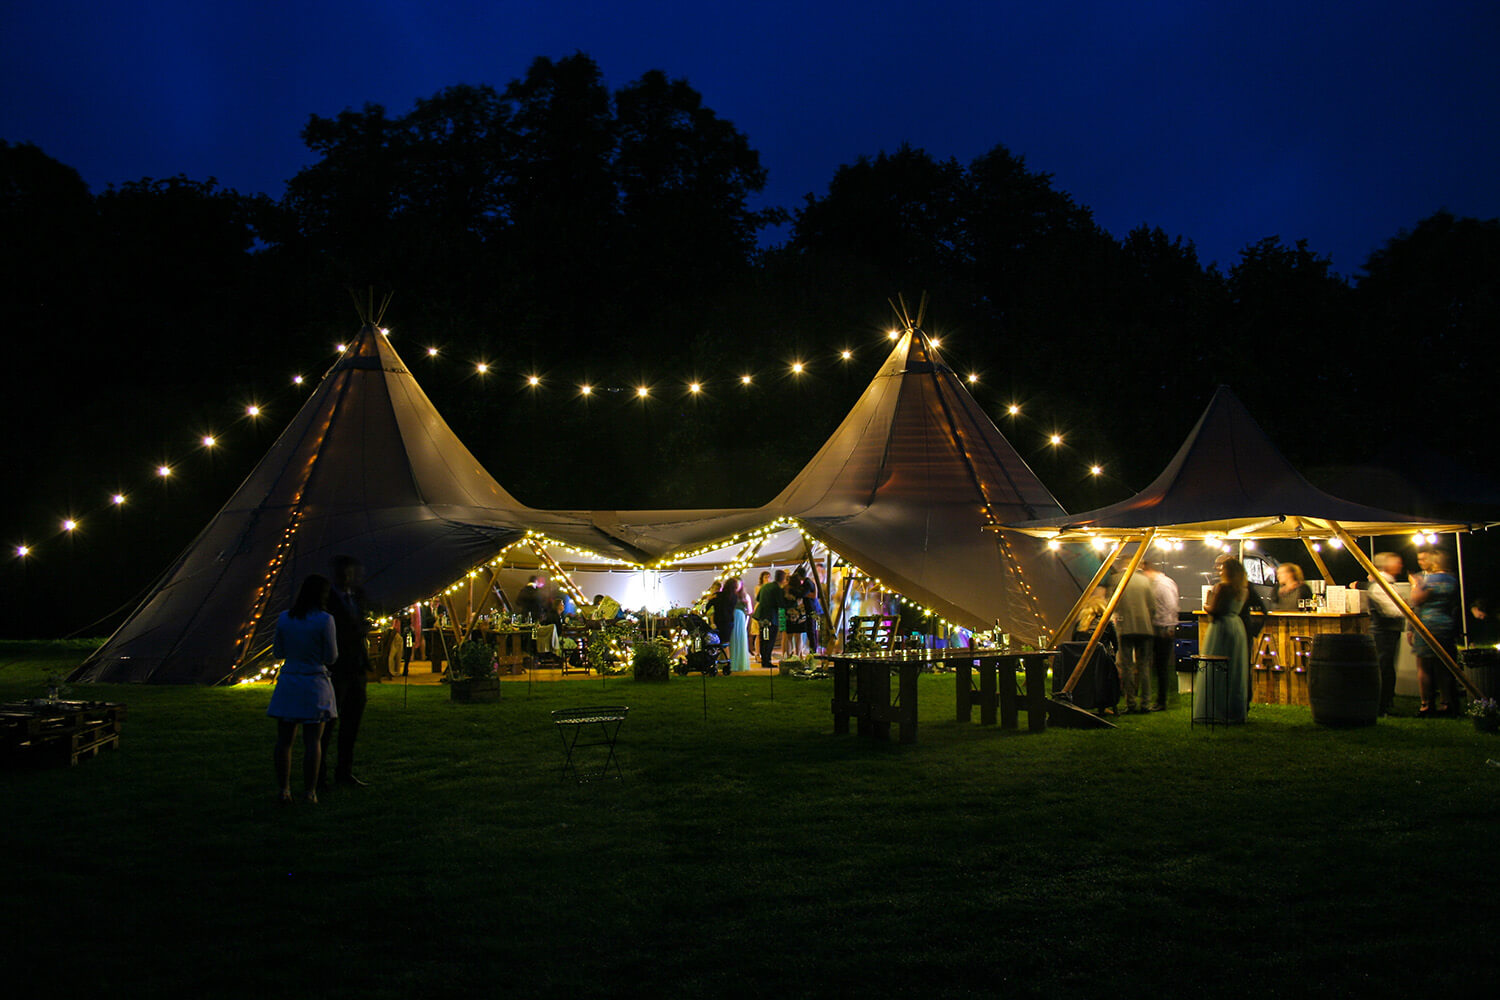 Two Tipis with festoon lighting and a nimbus with a bar beneath